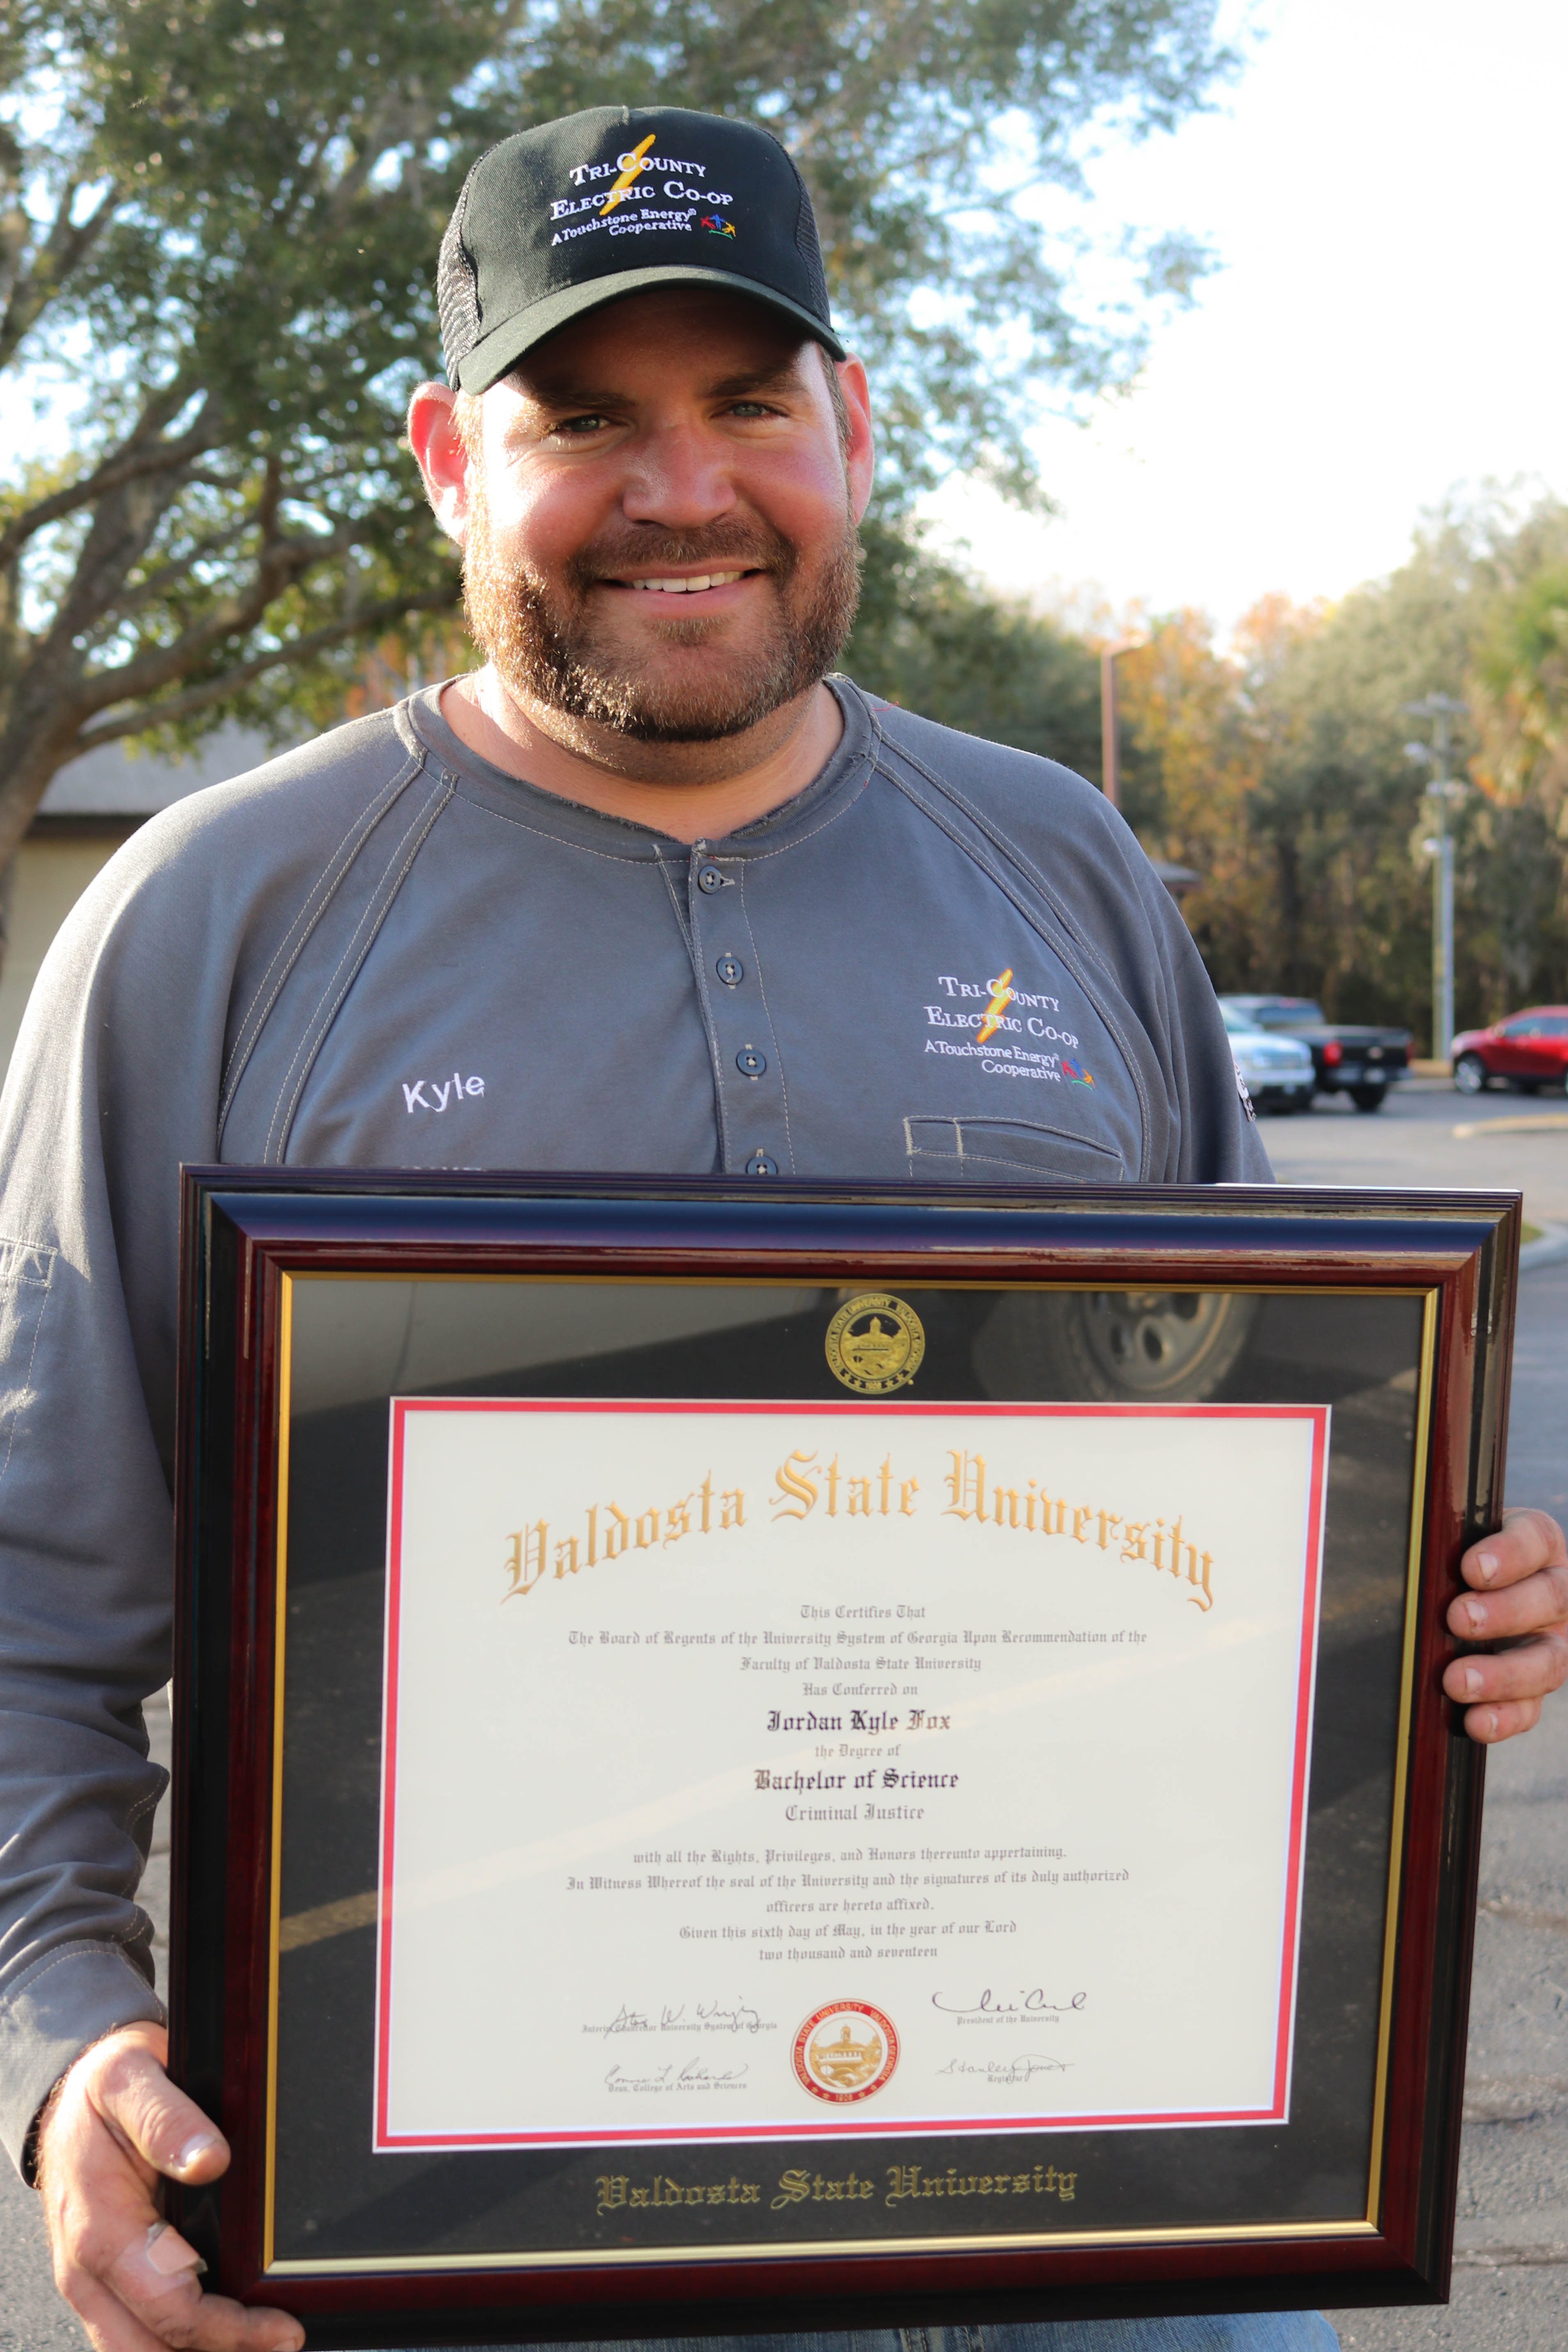 Kyle Fox with his Bachelors degree from Valdosta State University